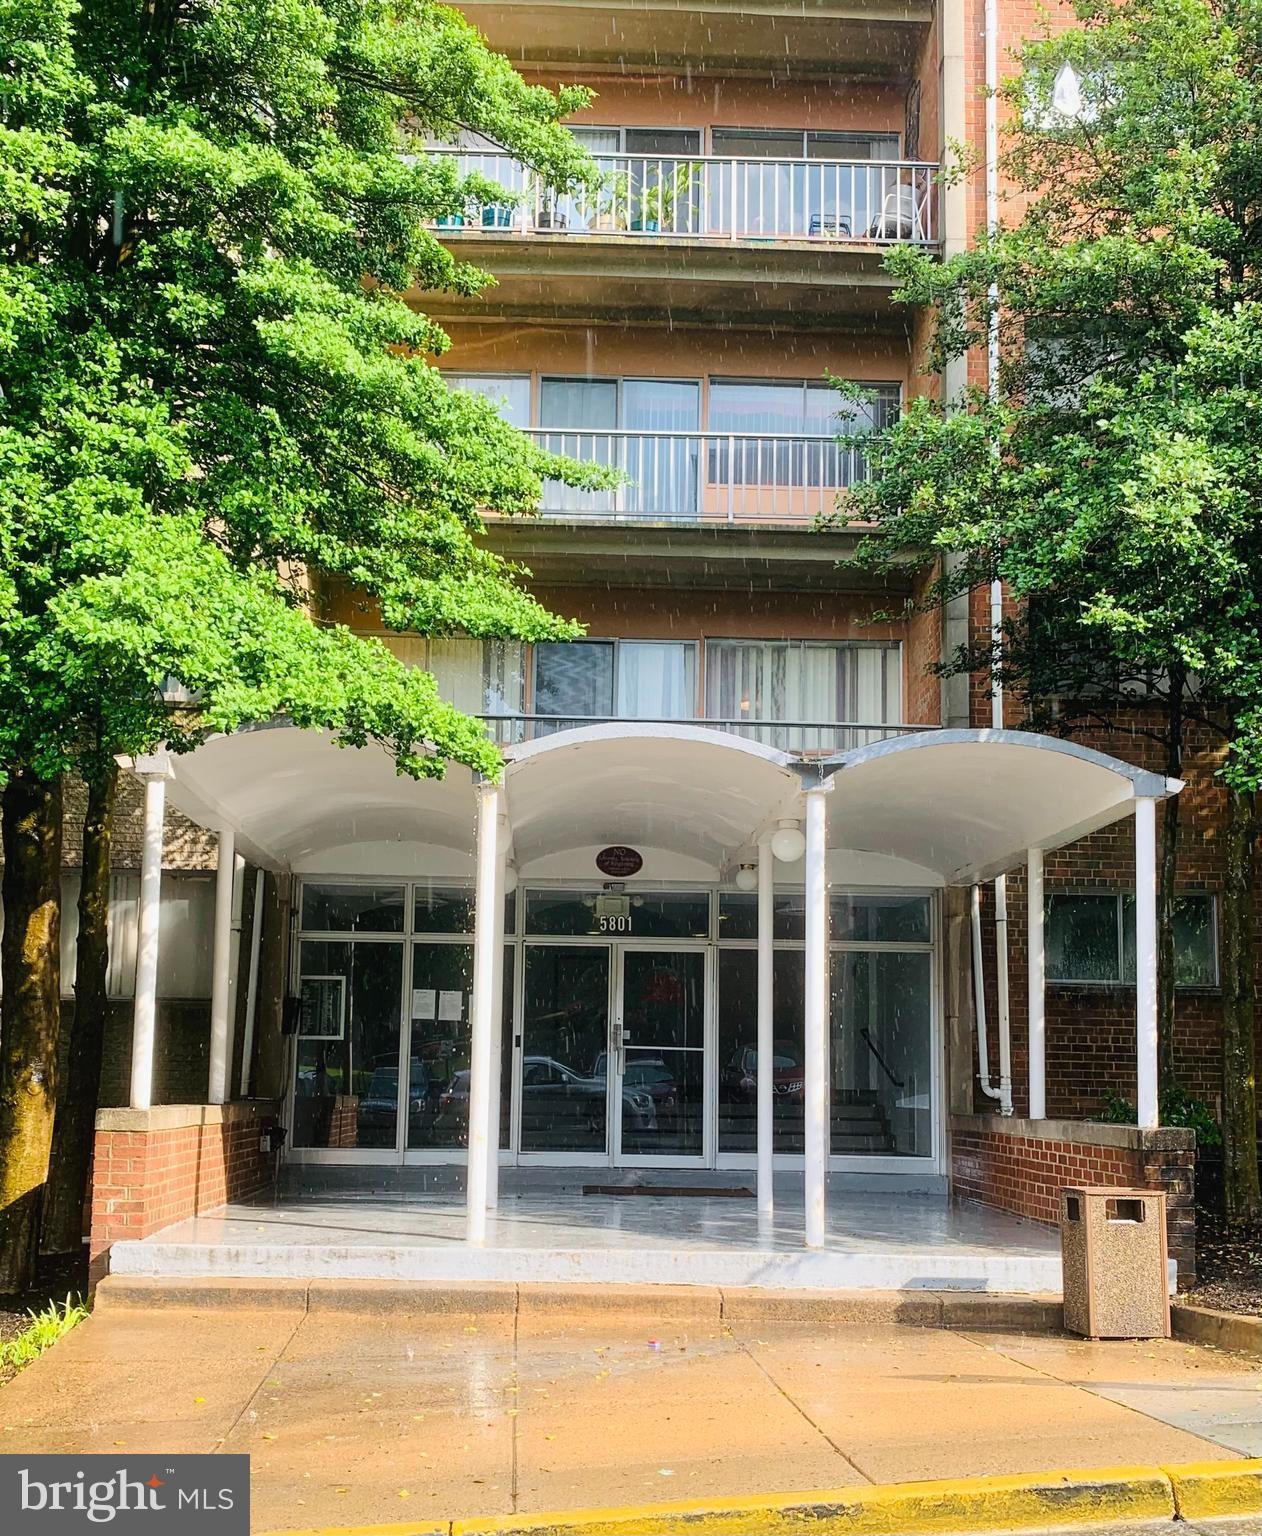 Beautifully kept community with community pool, priced to sell end unit with 1110 SQFT  with 2 beautiful bedrooms  open kitchen space. condo has an Open concept floor plan. Utilities included in Condo fee. Minutes to DC, and metro. Walk to the shopping center in the heart of Alexandria desirable location. Close to the Amazon HQ. (VA Approved)